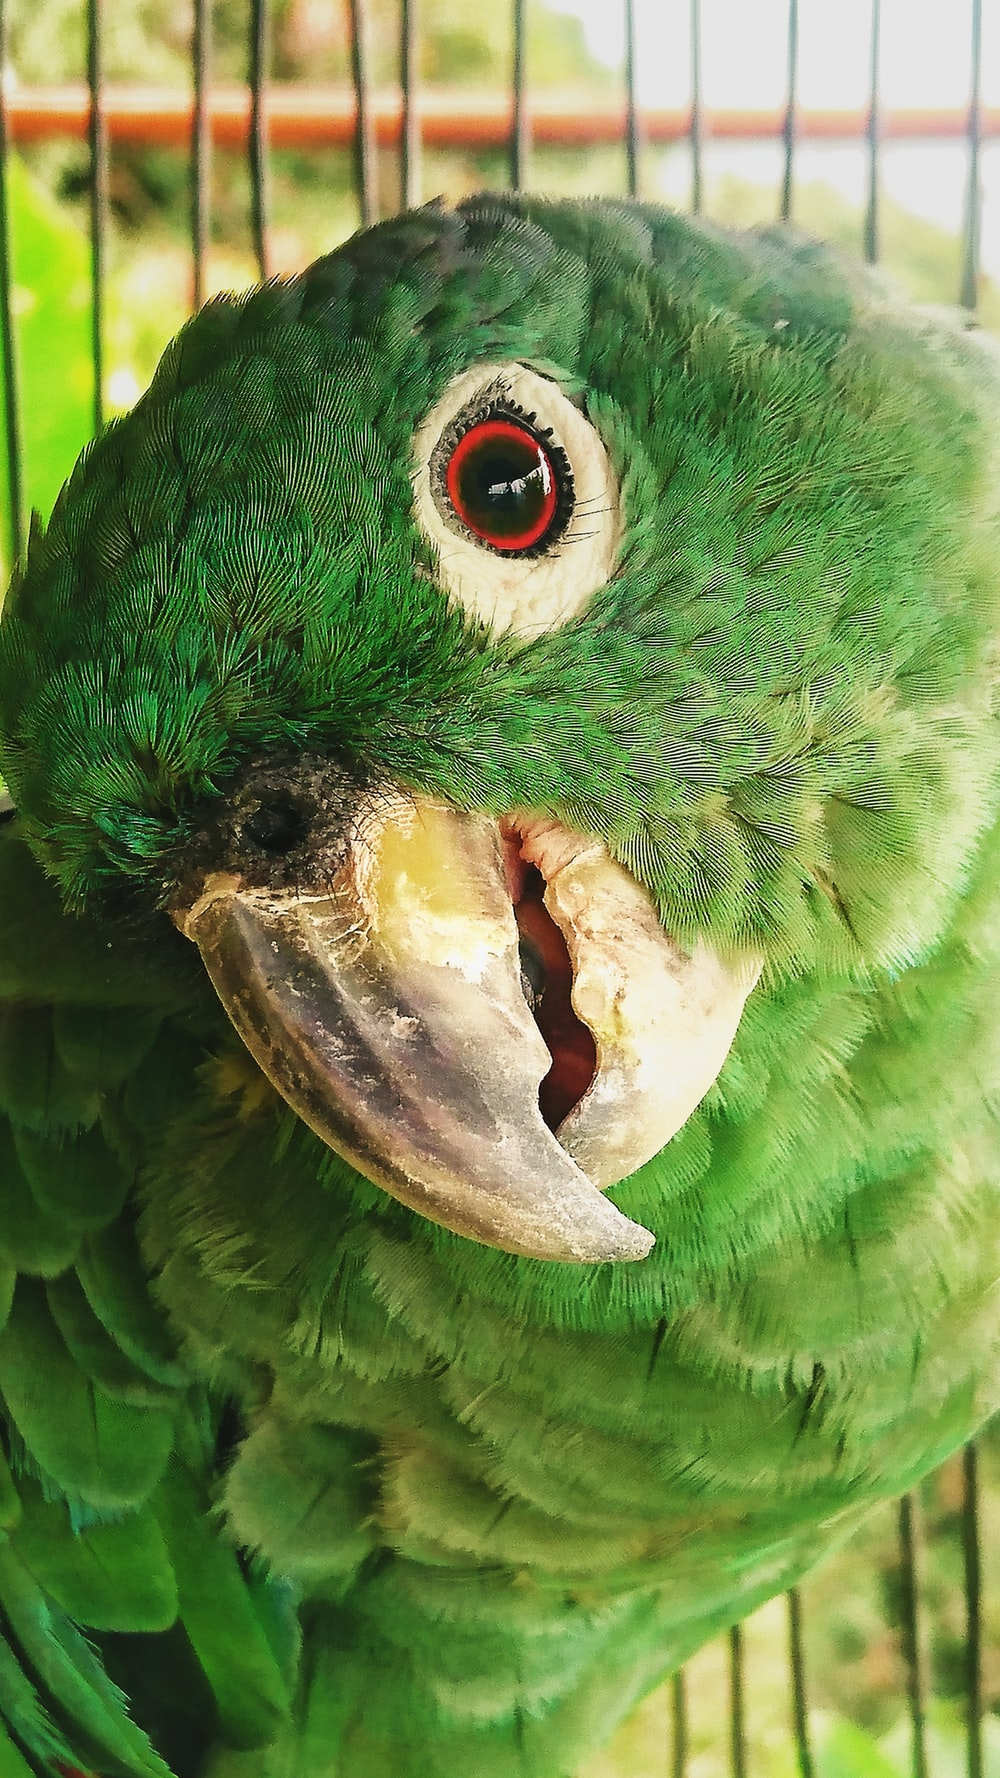 green and yellow bird in close up photography